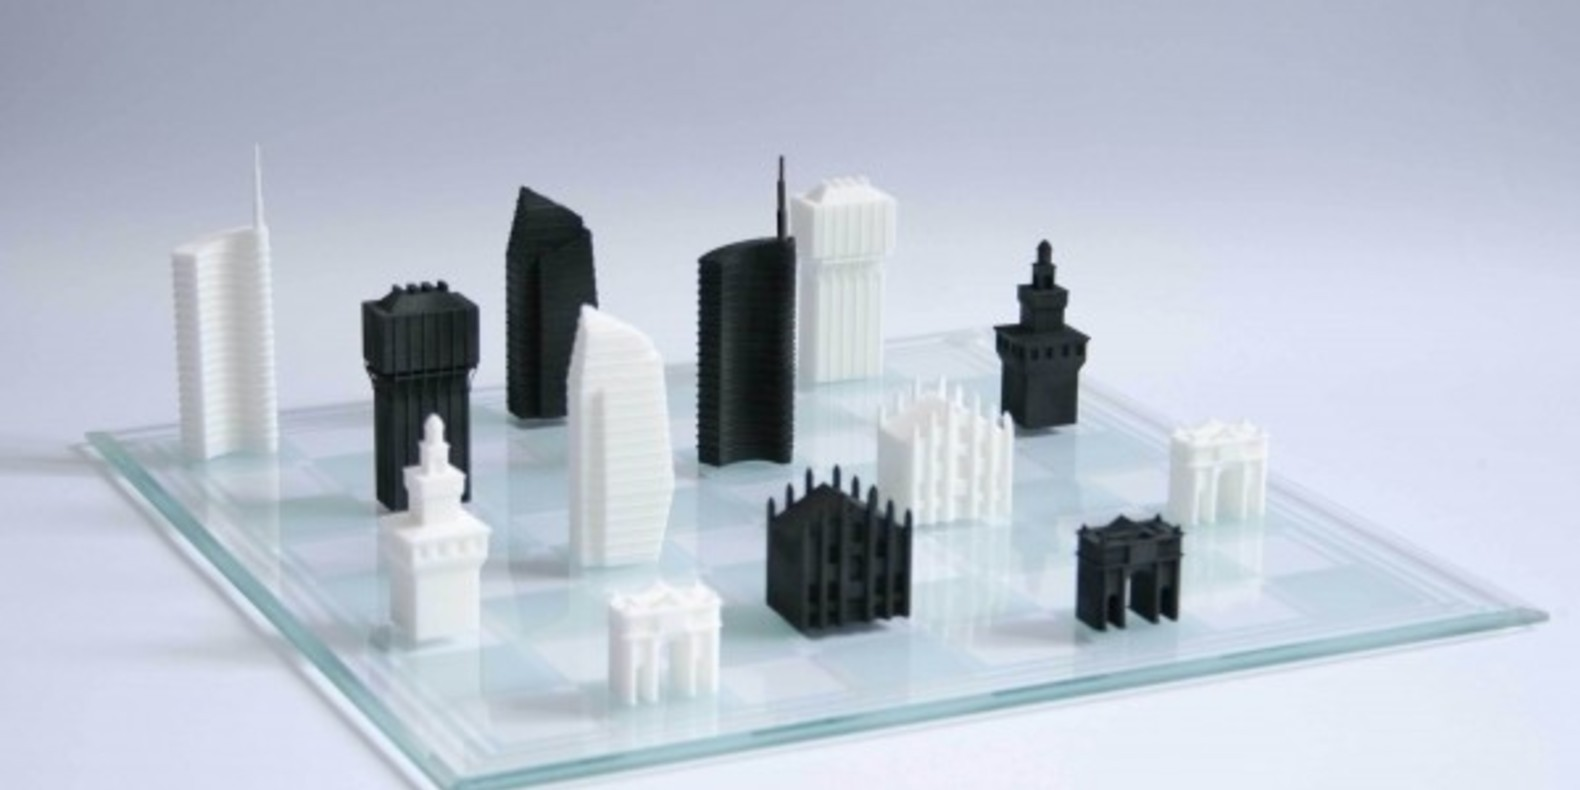 Chess game inspired by the city of Milan printed in 3D